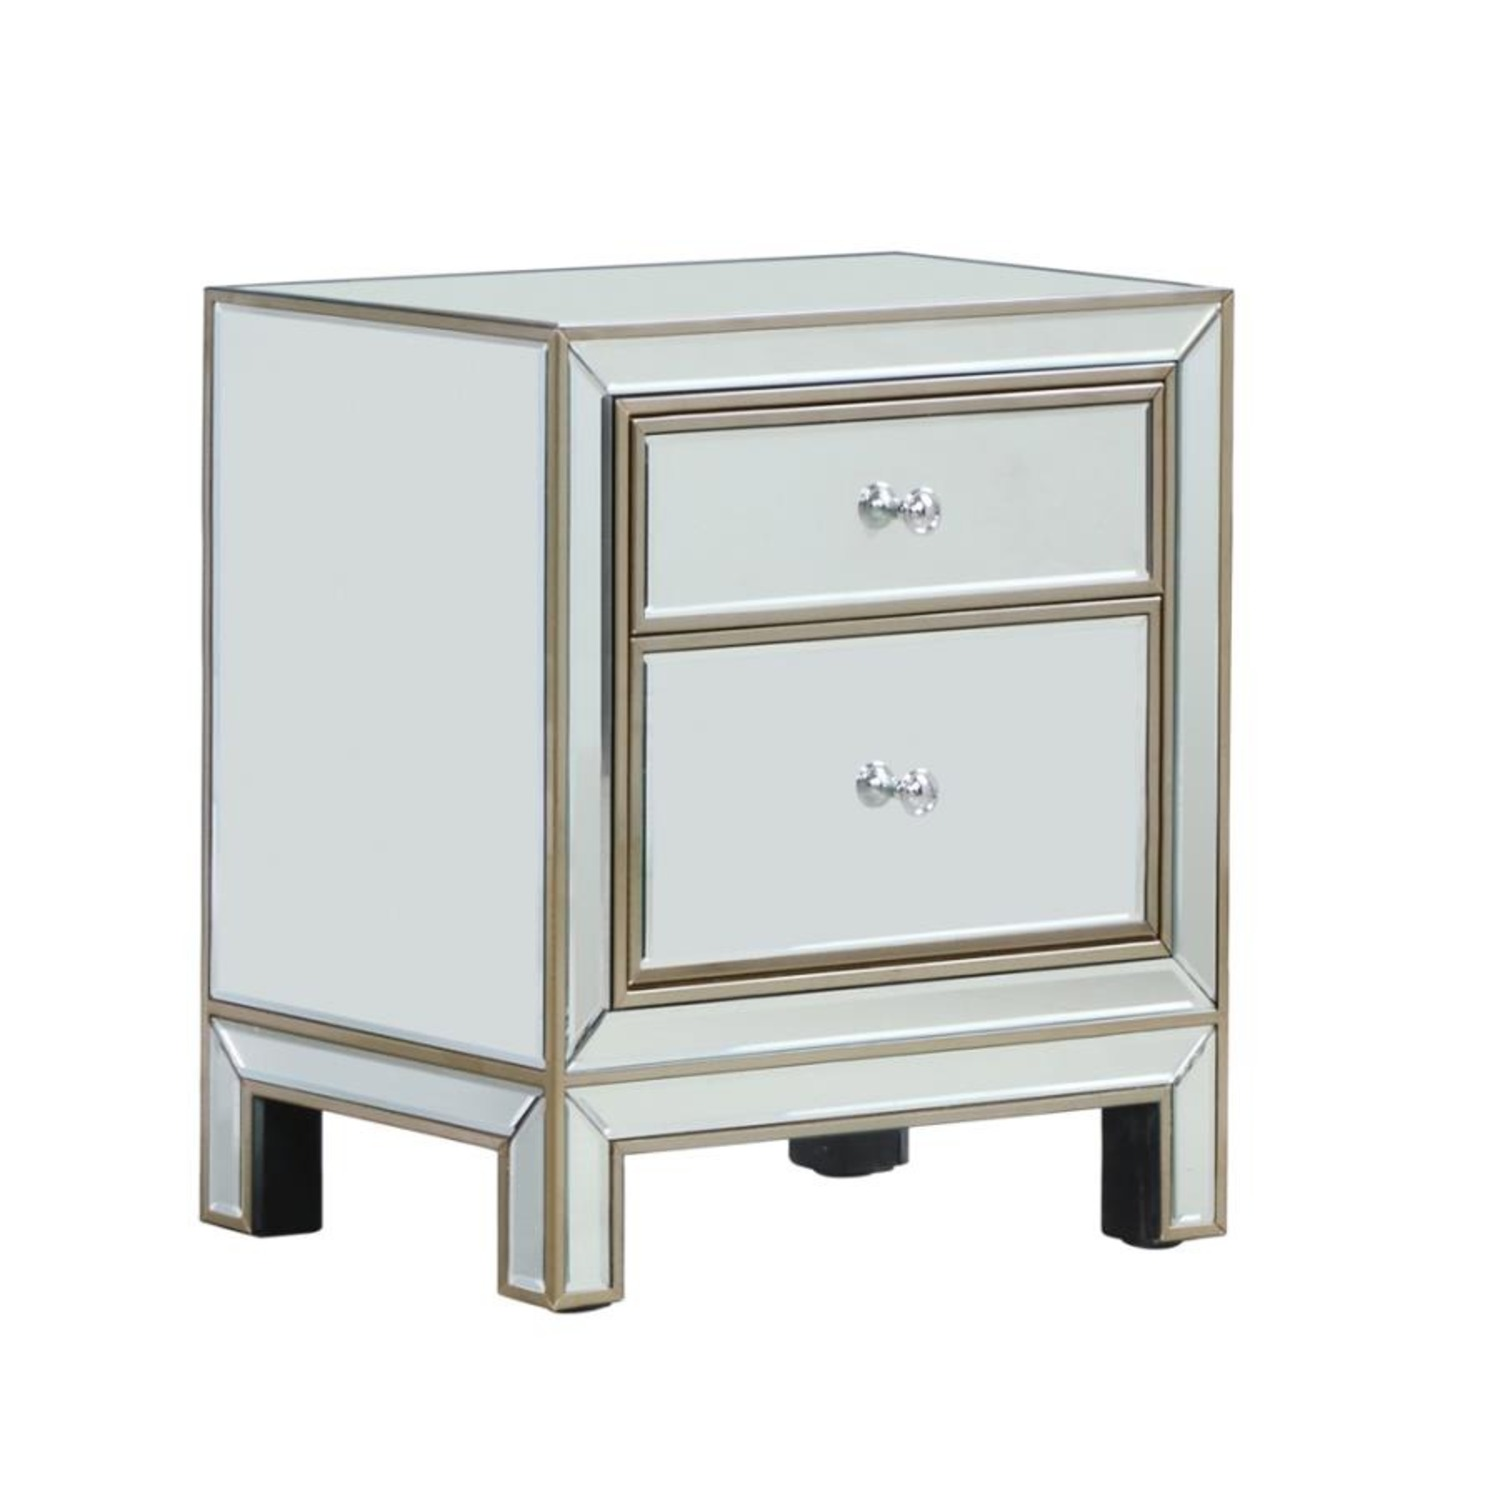 End Table In Silver & Champagne Finish - image-0